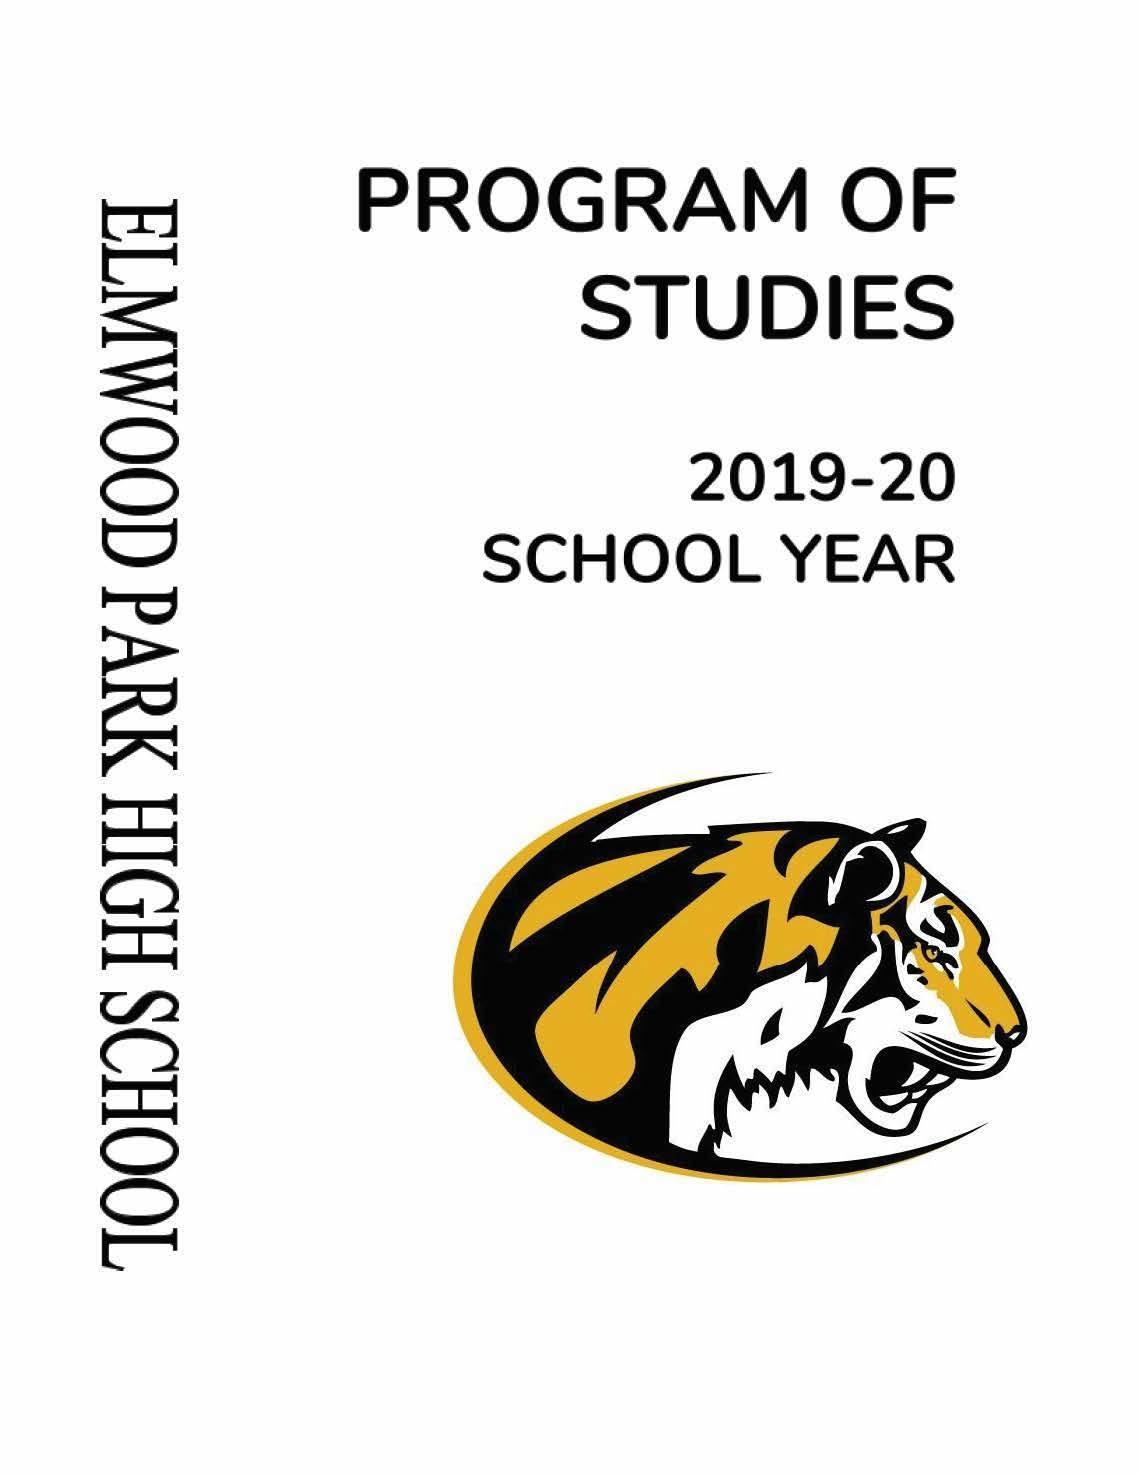 2019-20 Program of Studies, page 1